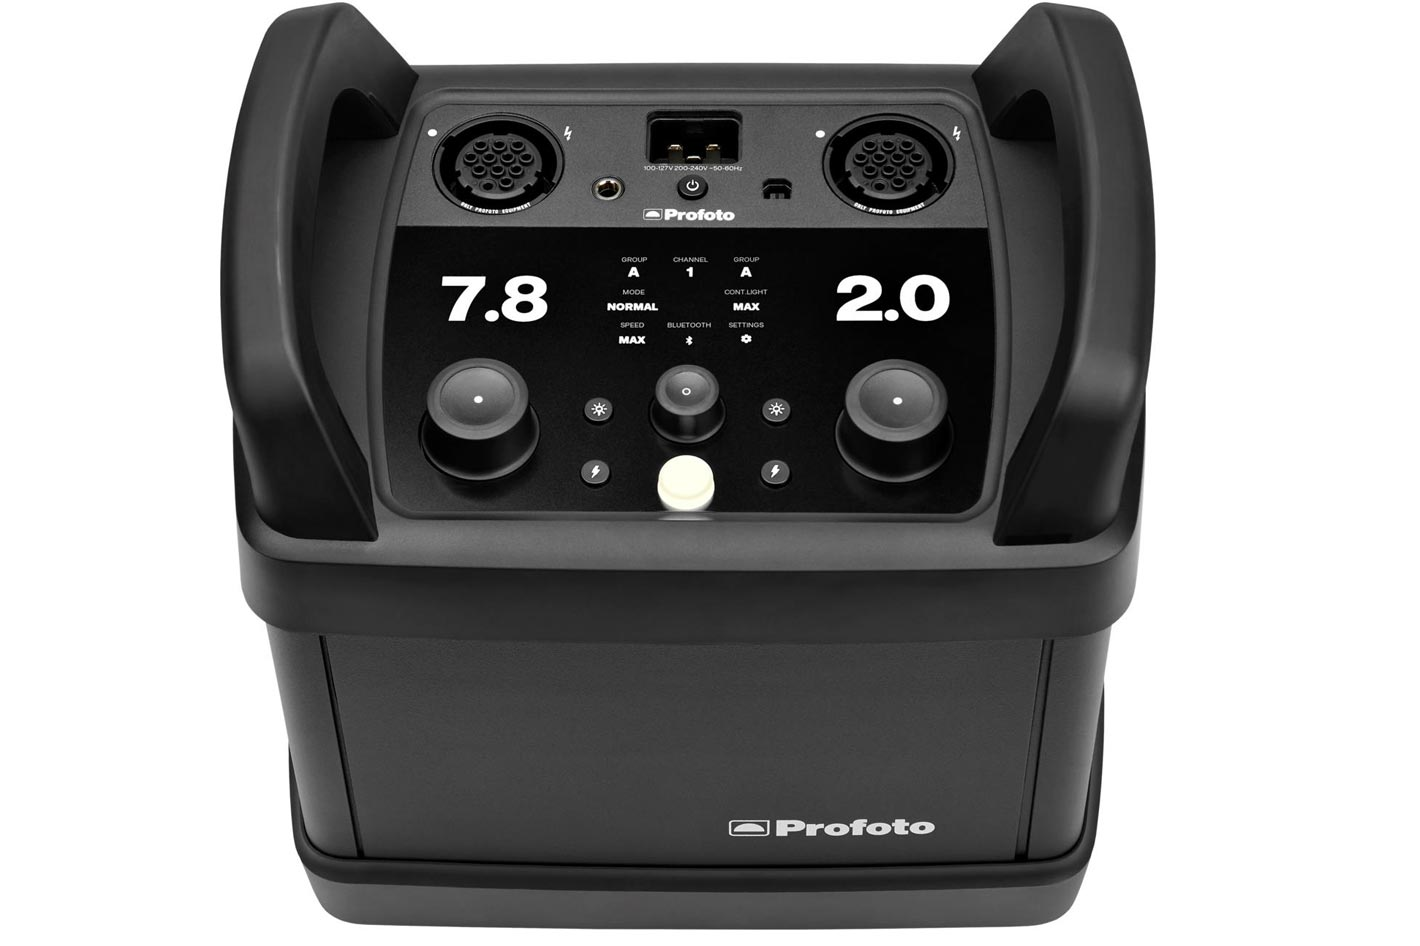 Profoto Pro-11: the ultimate flash is also future-proof